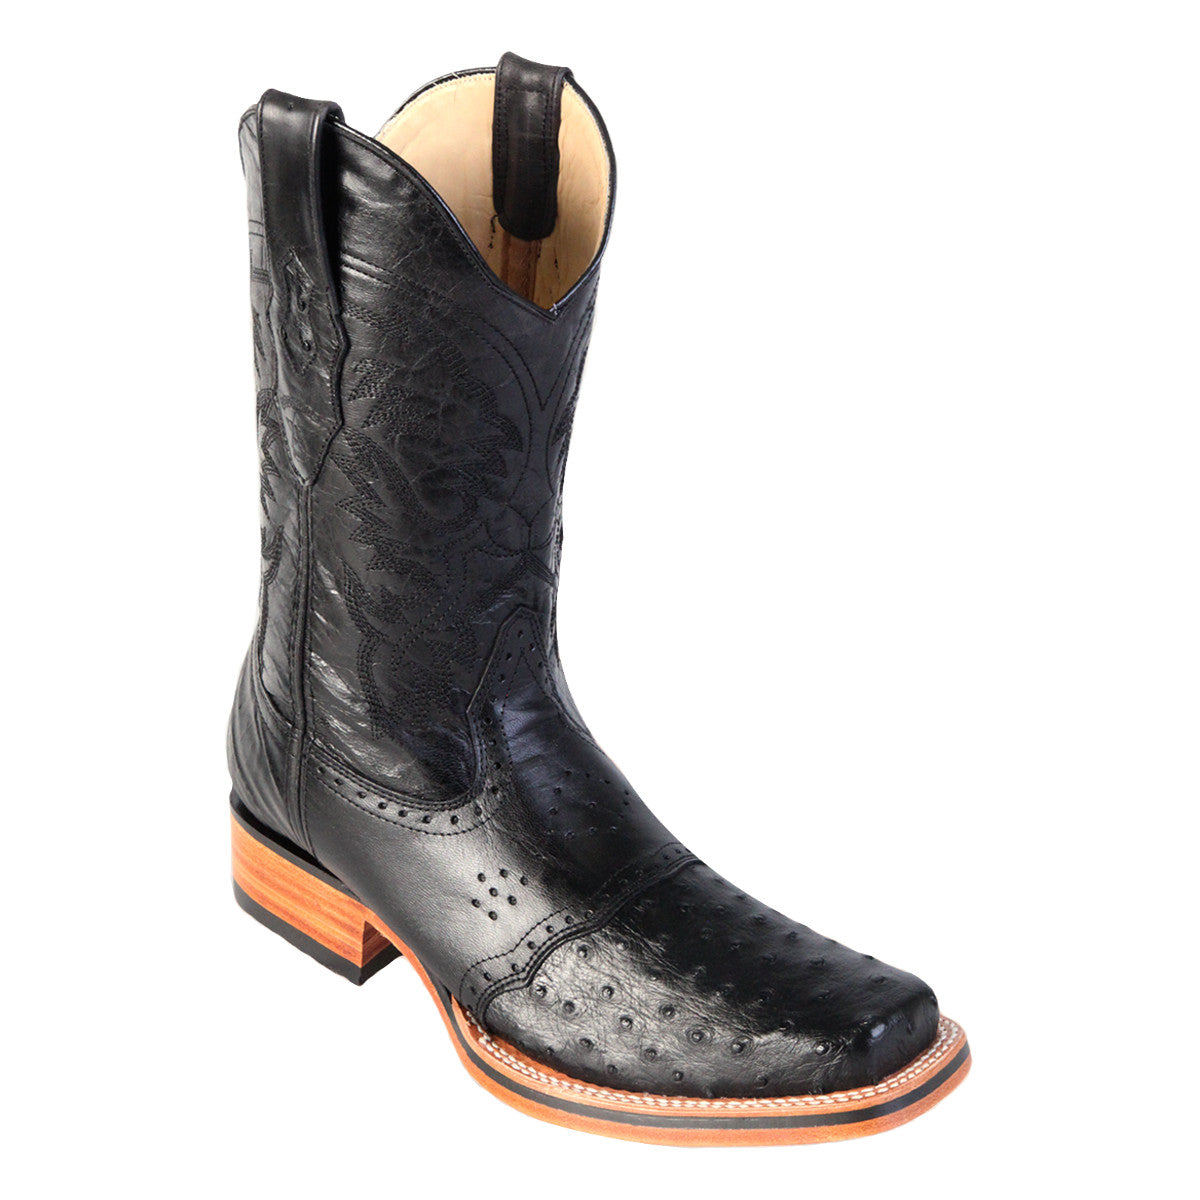 Los Altos Boots Rodeo Boot Ostrich w/Saddle